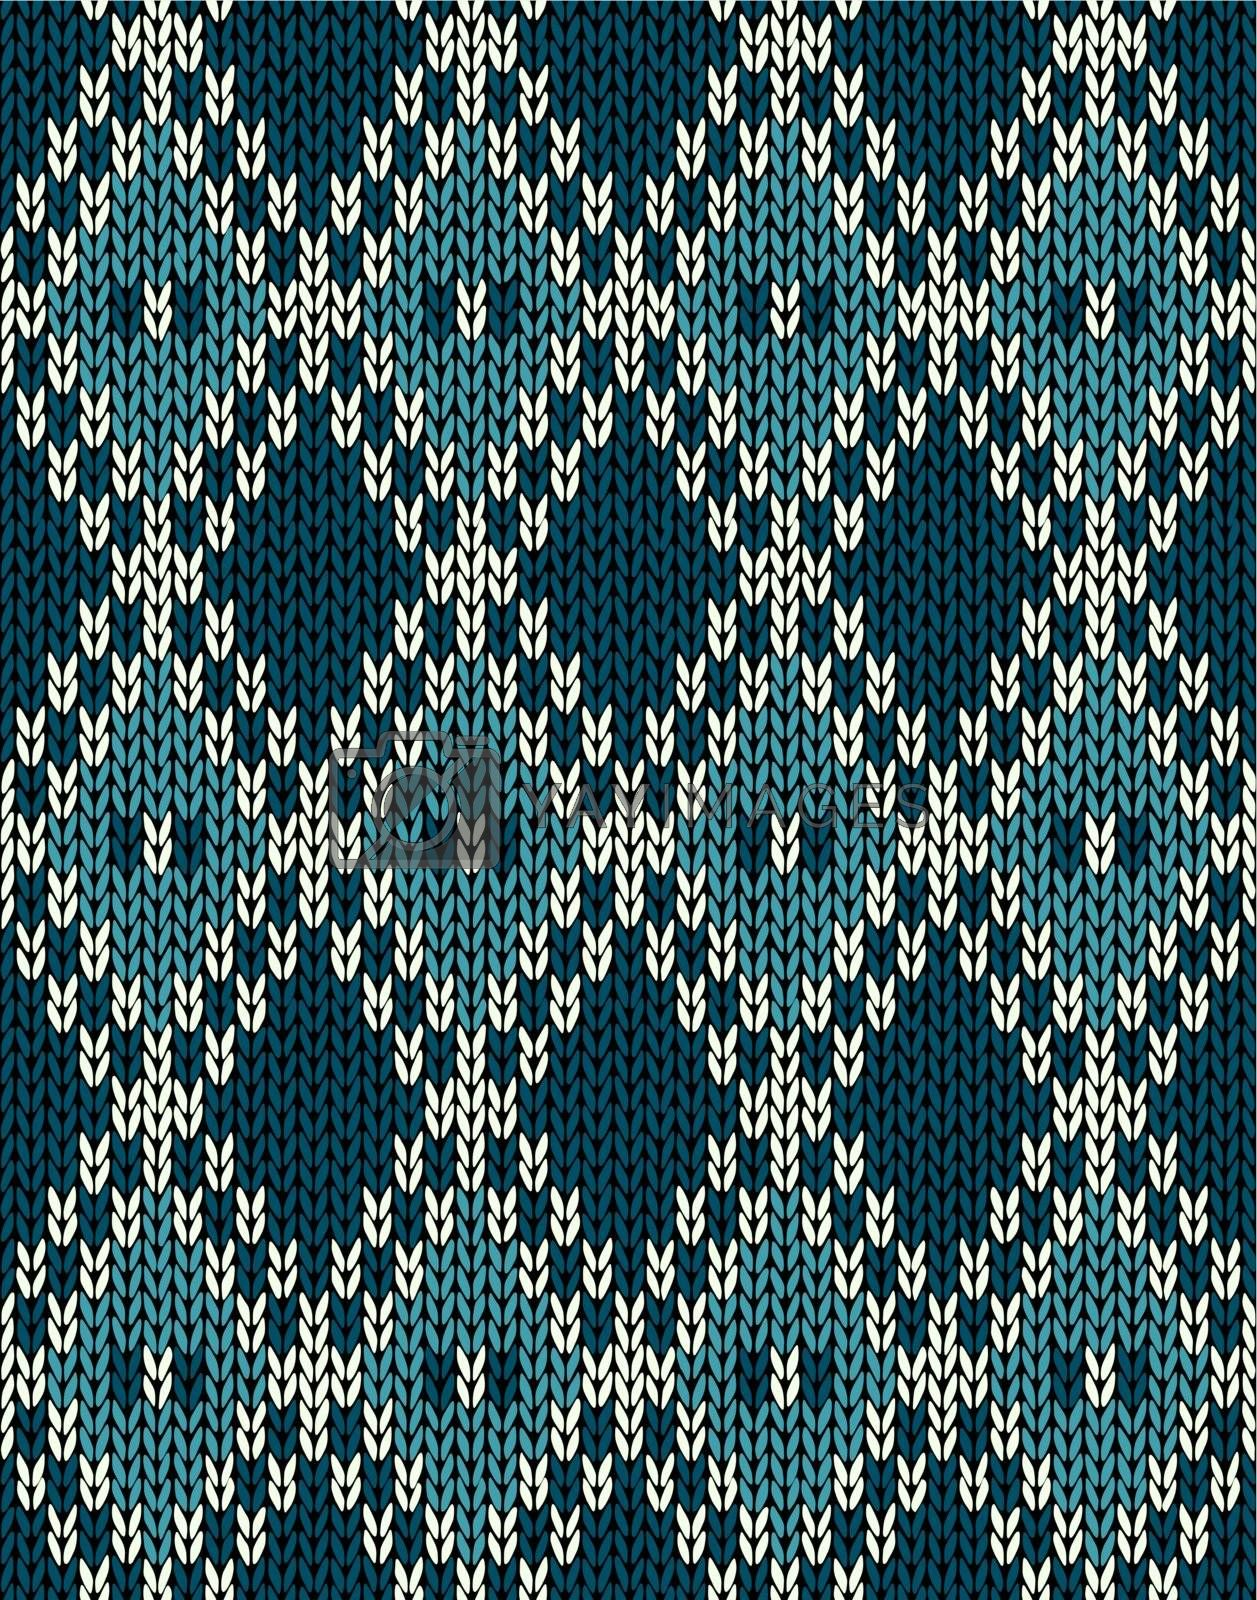 Knit Woolen Seamless Jacquard Ornament Pattern. Fabric Dark Blue by ESSL